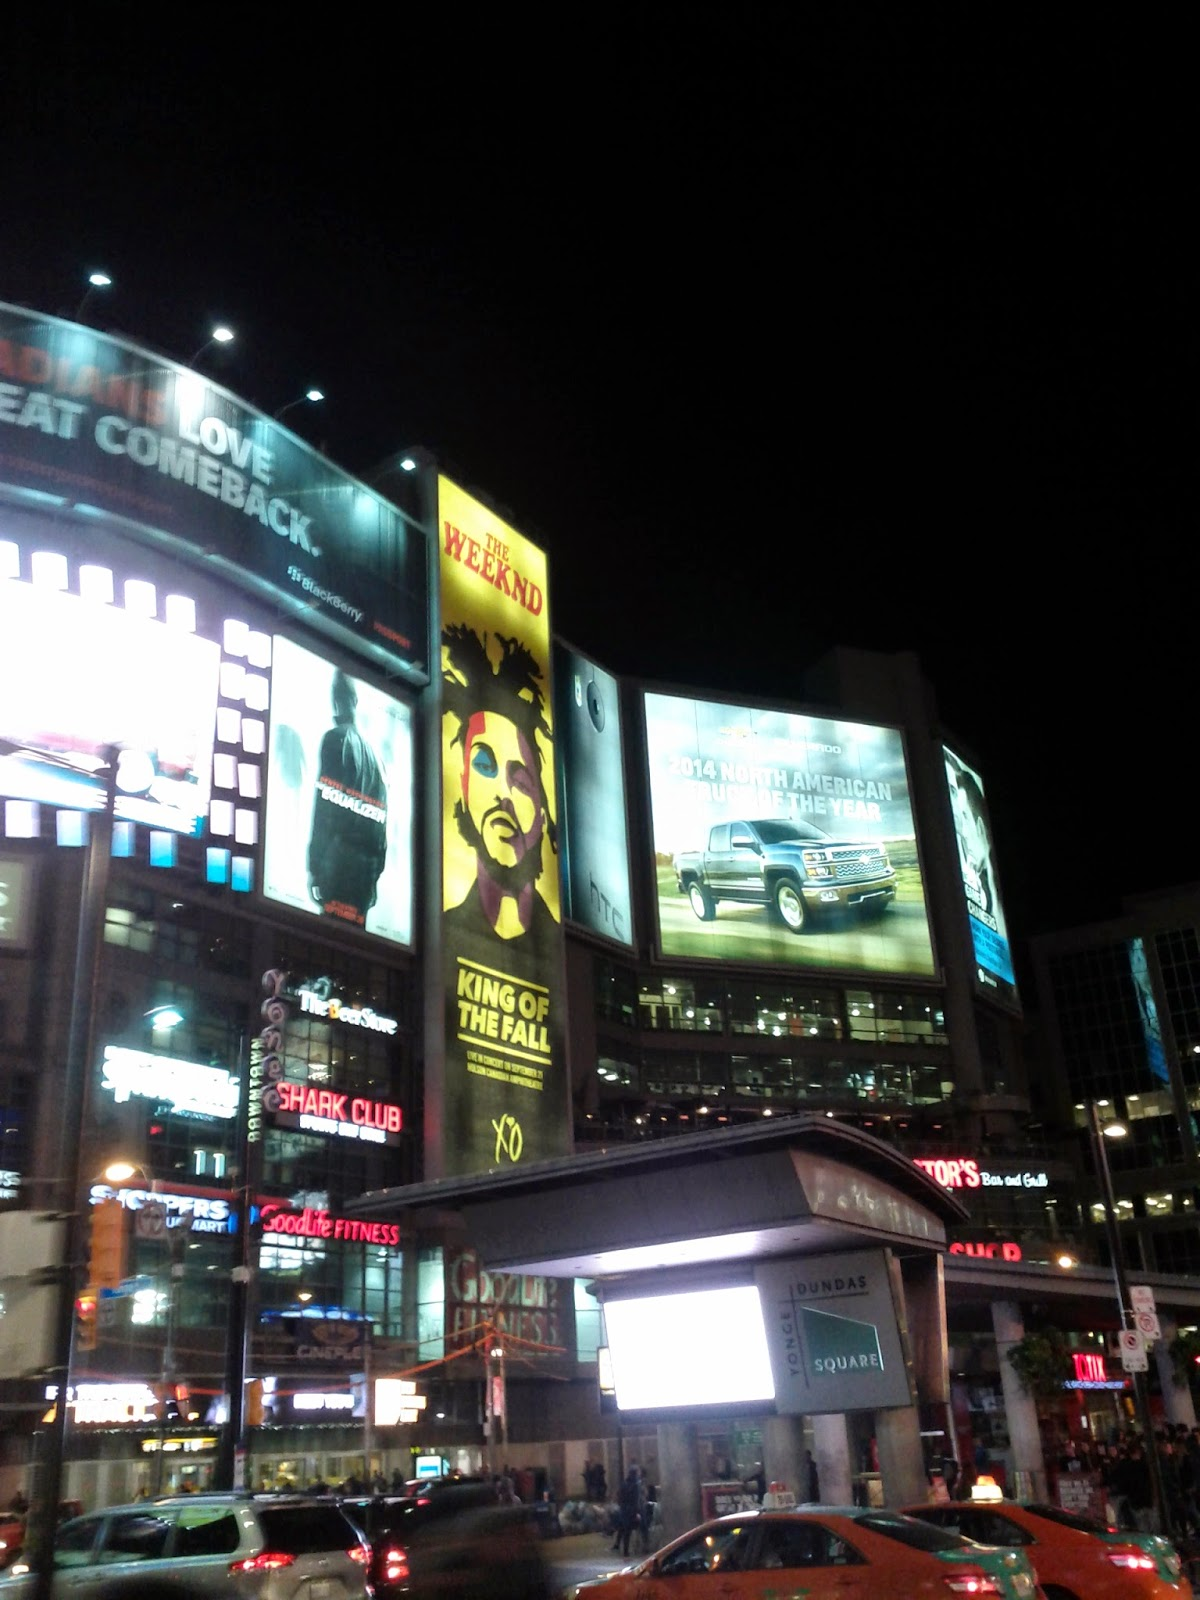 The Weekend King of the Fall Billboard in Dundas Square